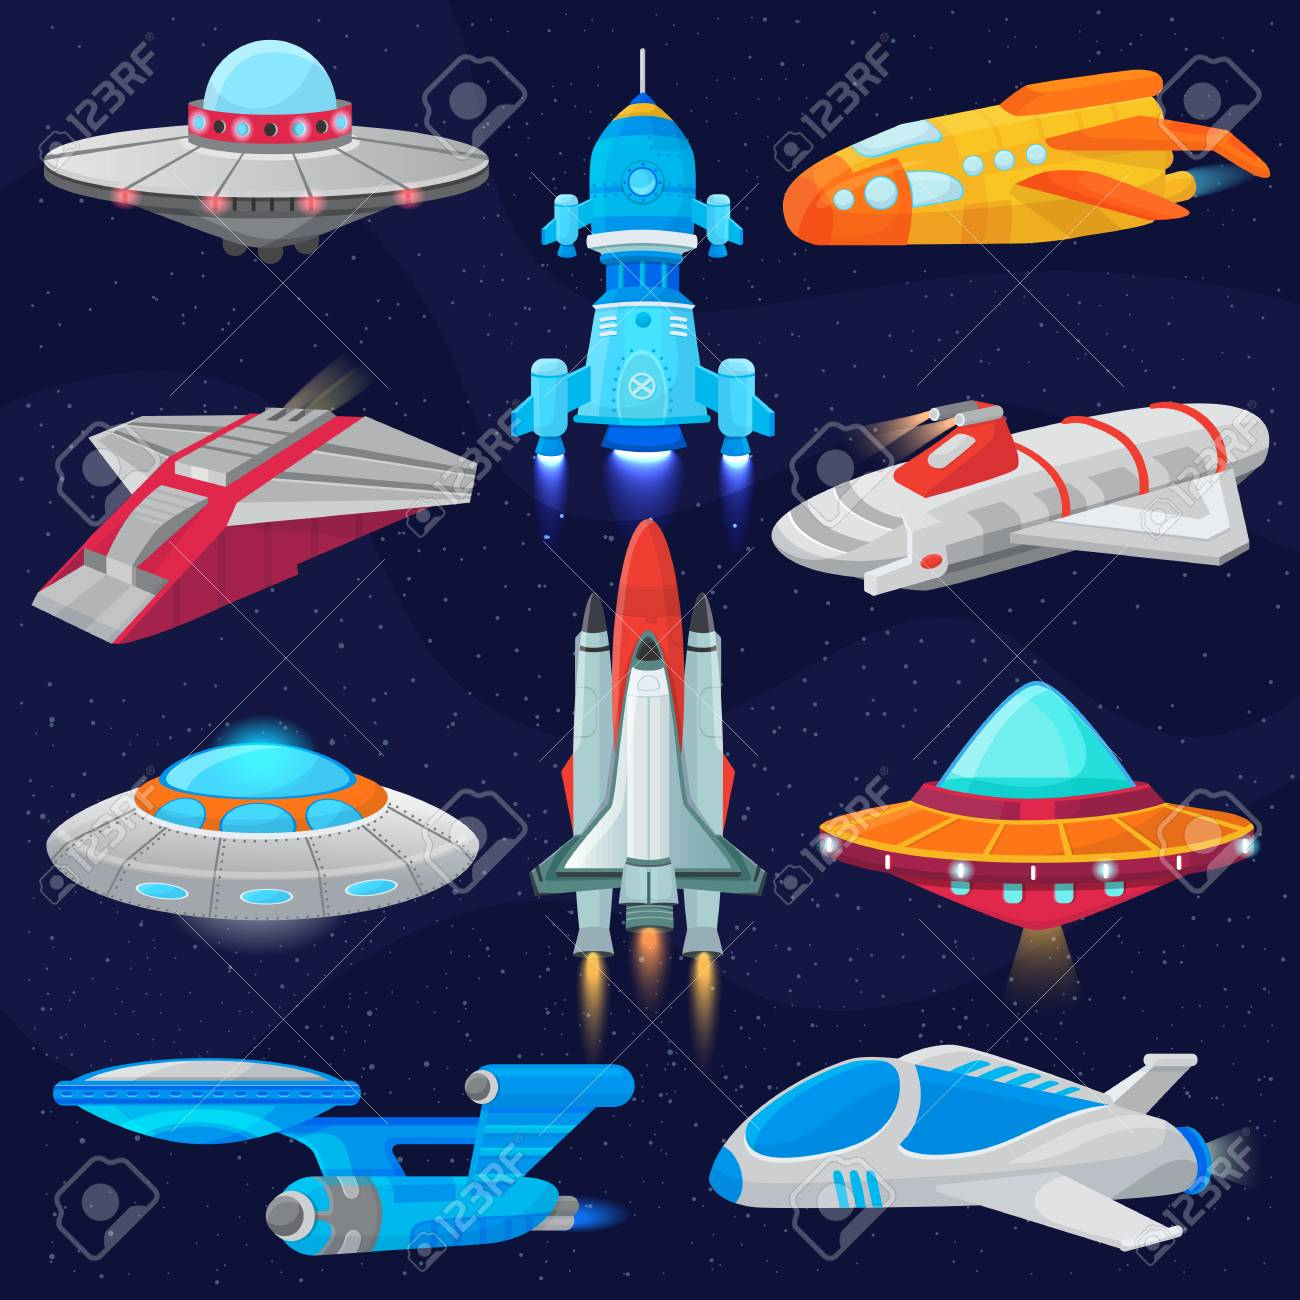 Rocket vector spaceship or spacecraft and spacy ufo illustration set of spaced ship or rocketship in universe space isolated on background - 98853955